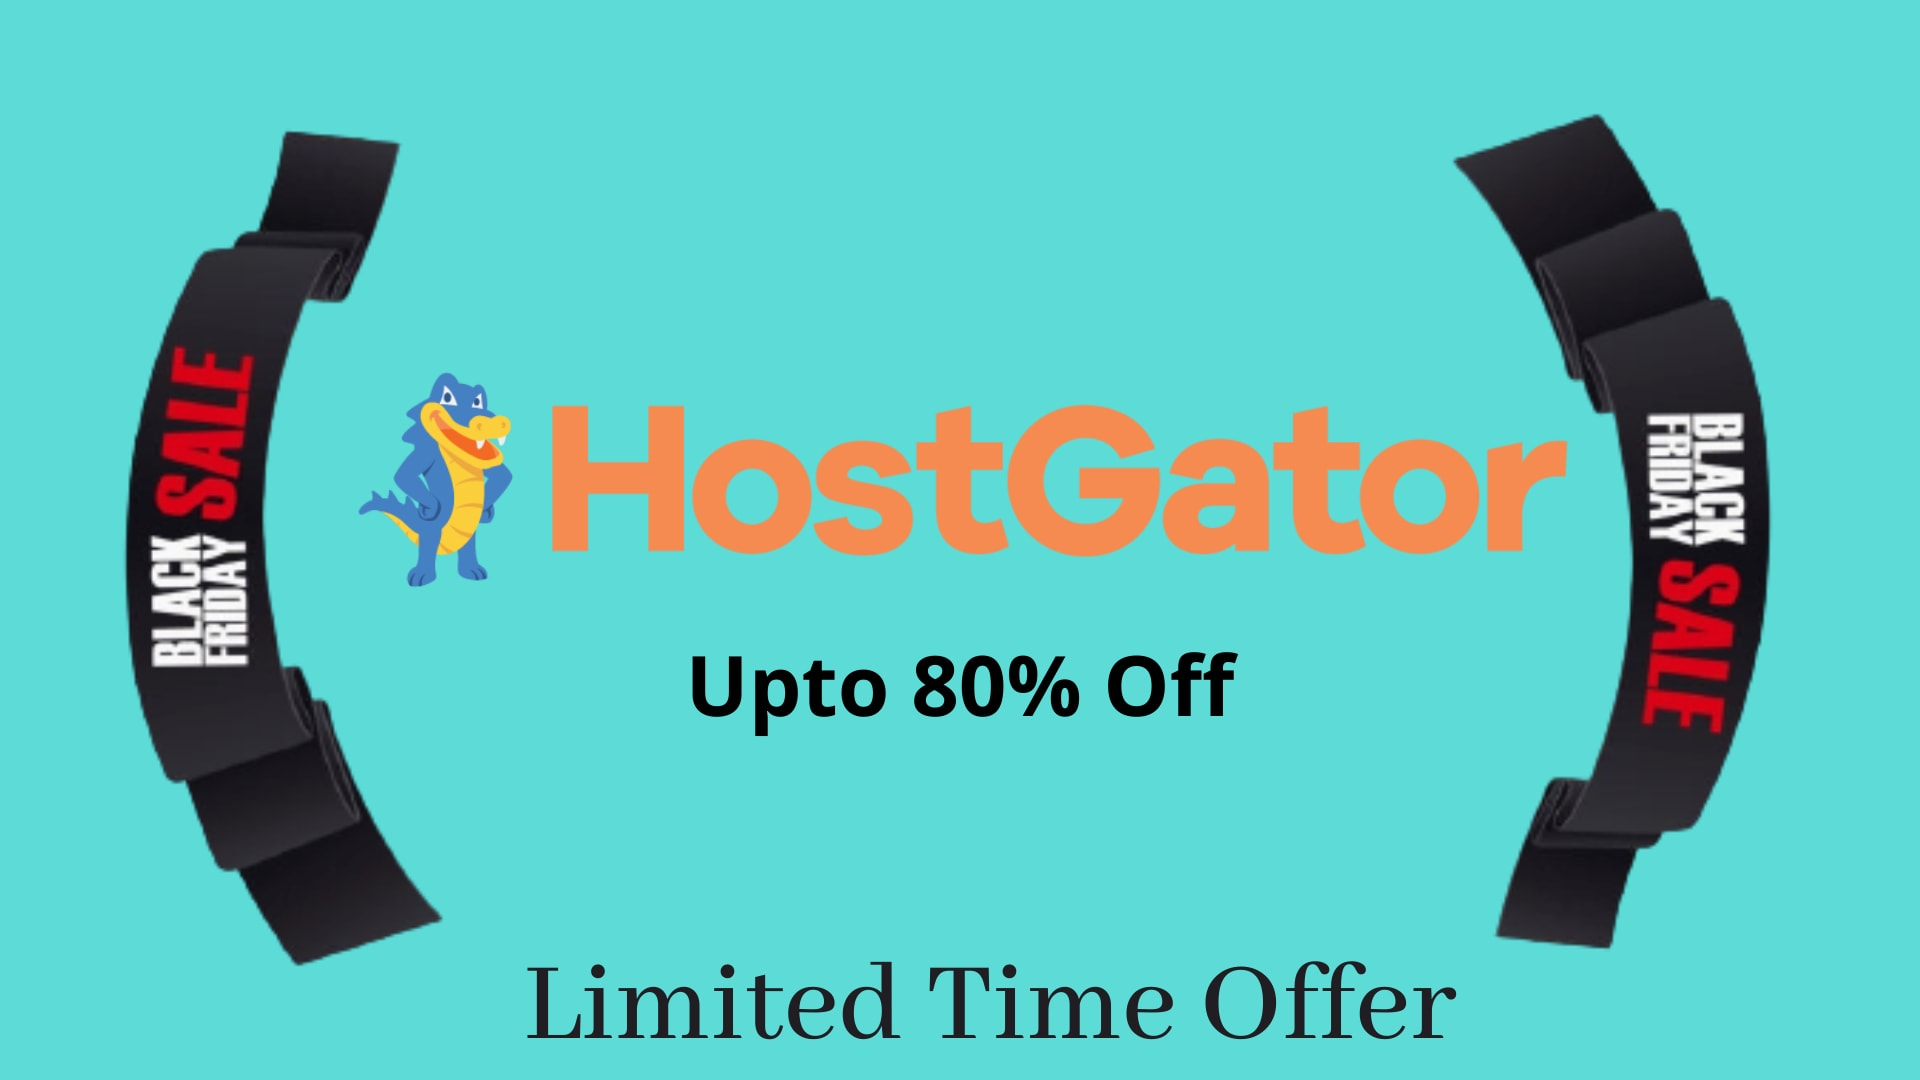 hostgator black friday deal 2020 - Top 10 Black Friday Hosting Deals 2020